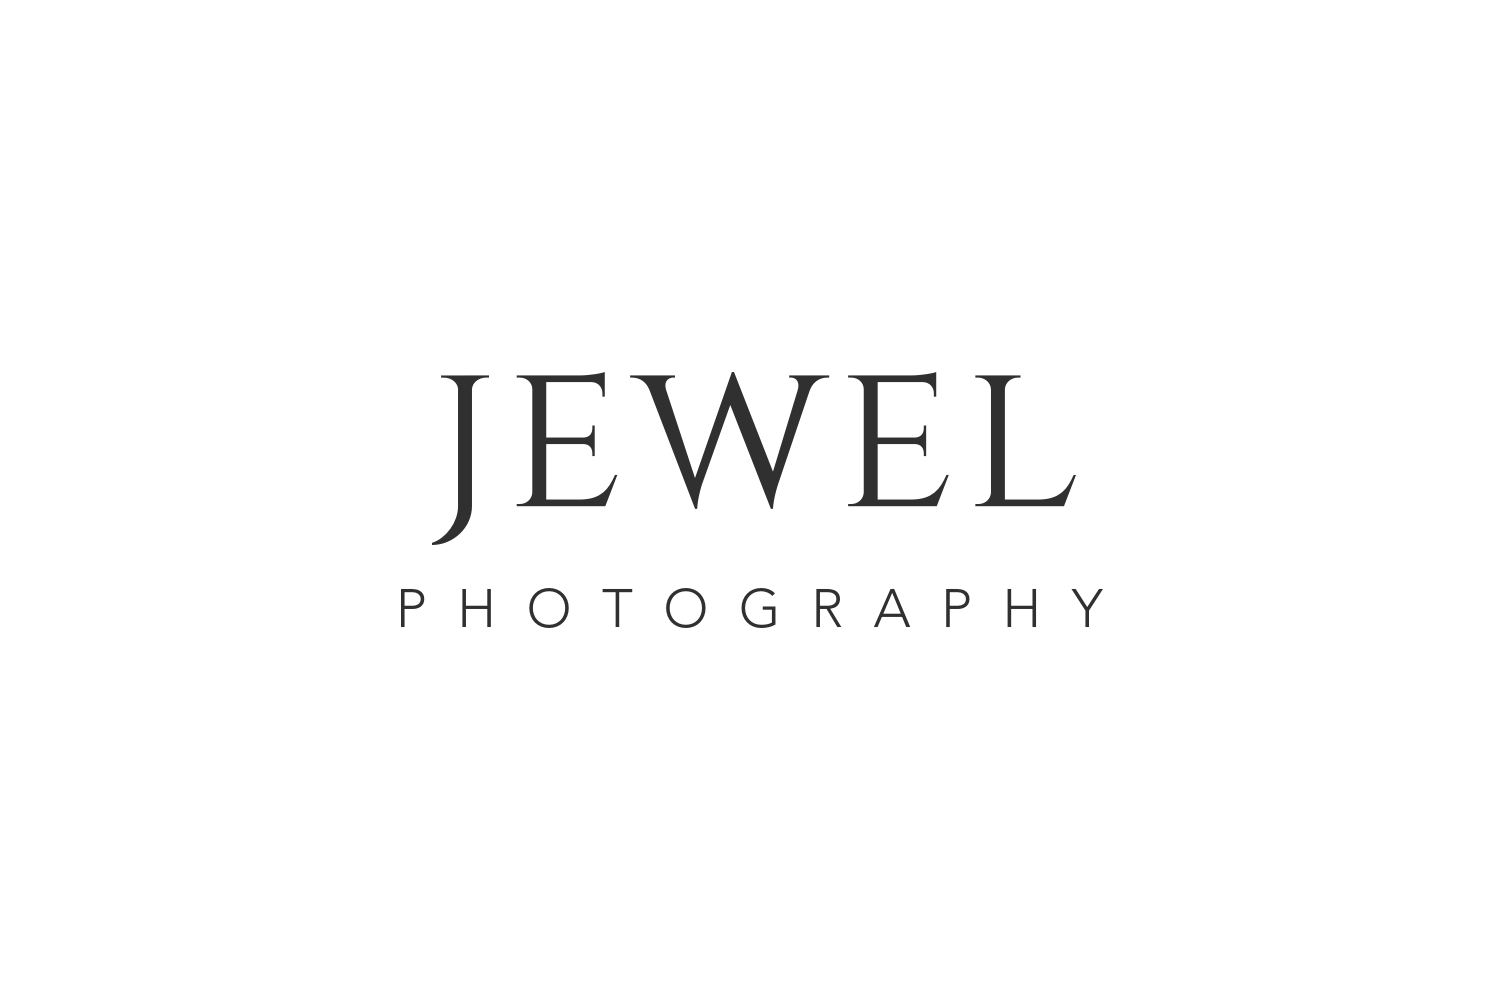 jewel-photography-logo.png